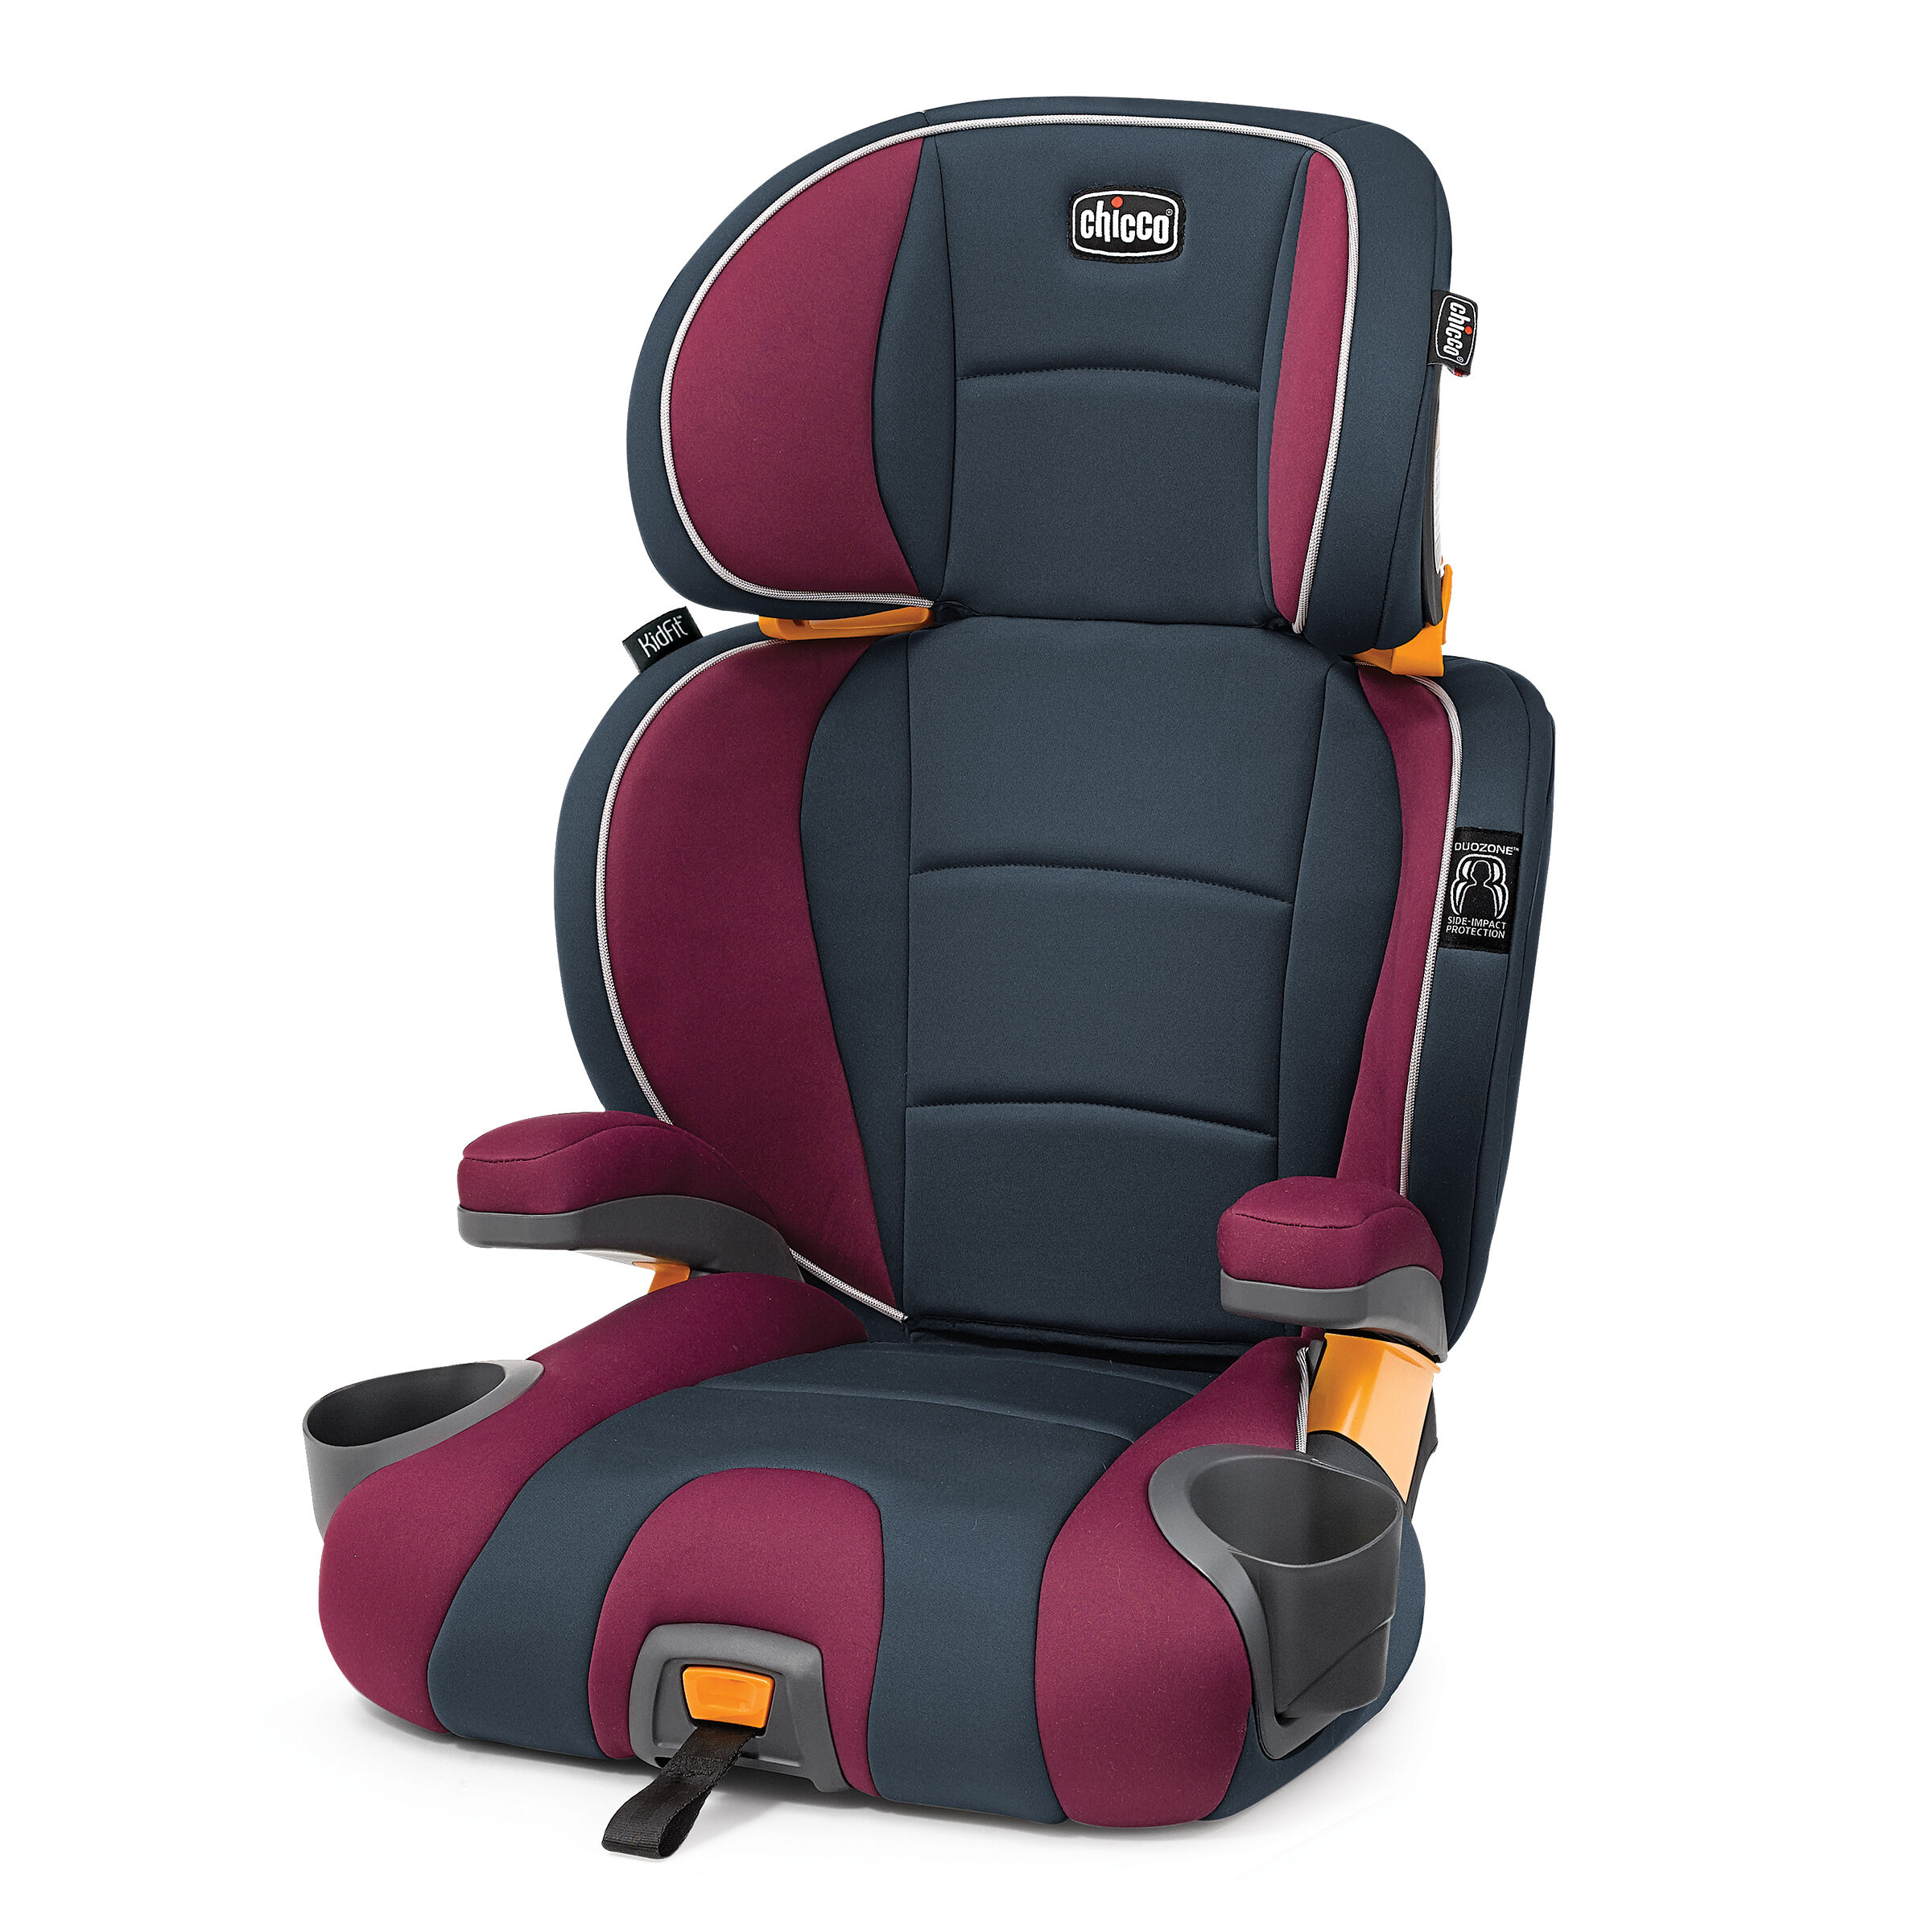 Car Seat Chair Chicco Kidfit 2 In 1 Belt Positioning Booster Seat Amethyst